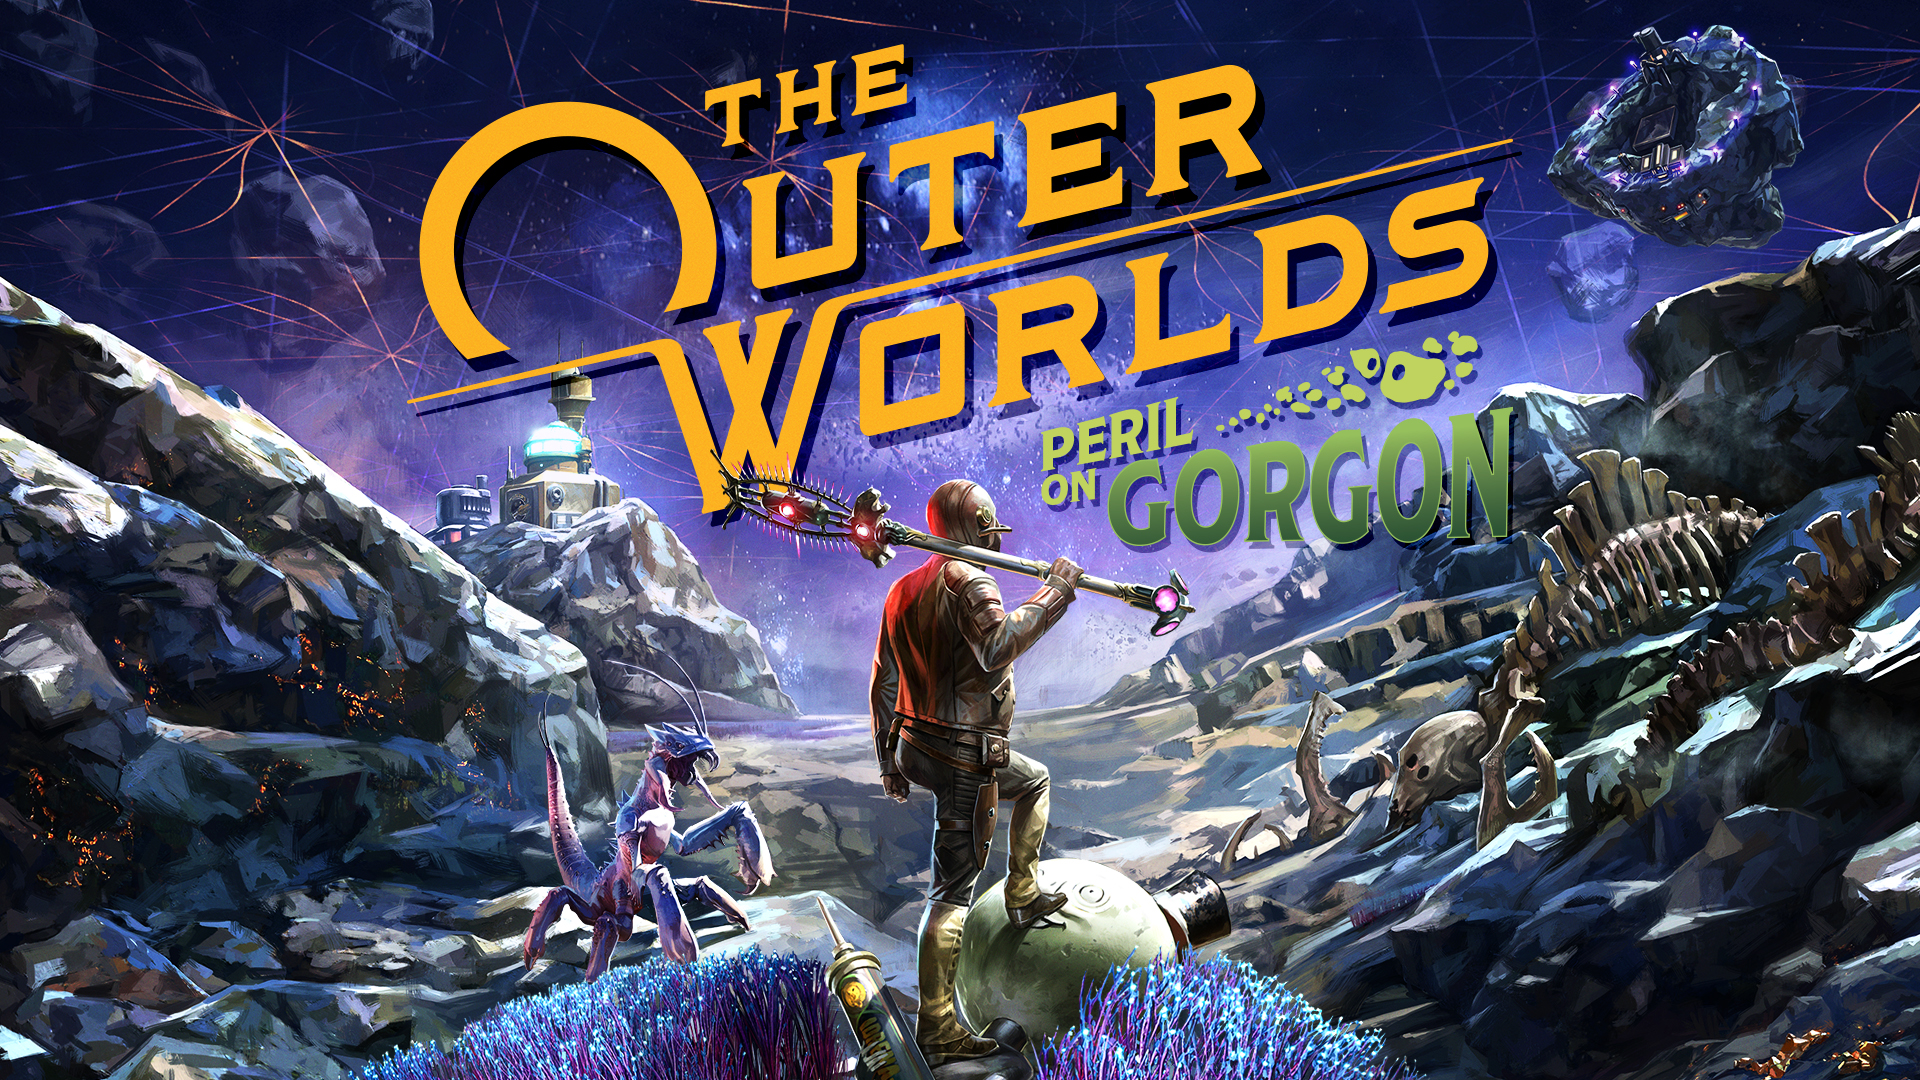 The Outer Worlds: Peril On Gorgon - More Of The Same, But That's Just Fine